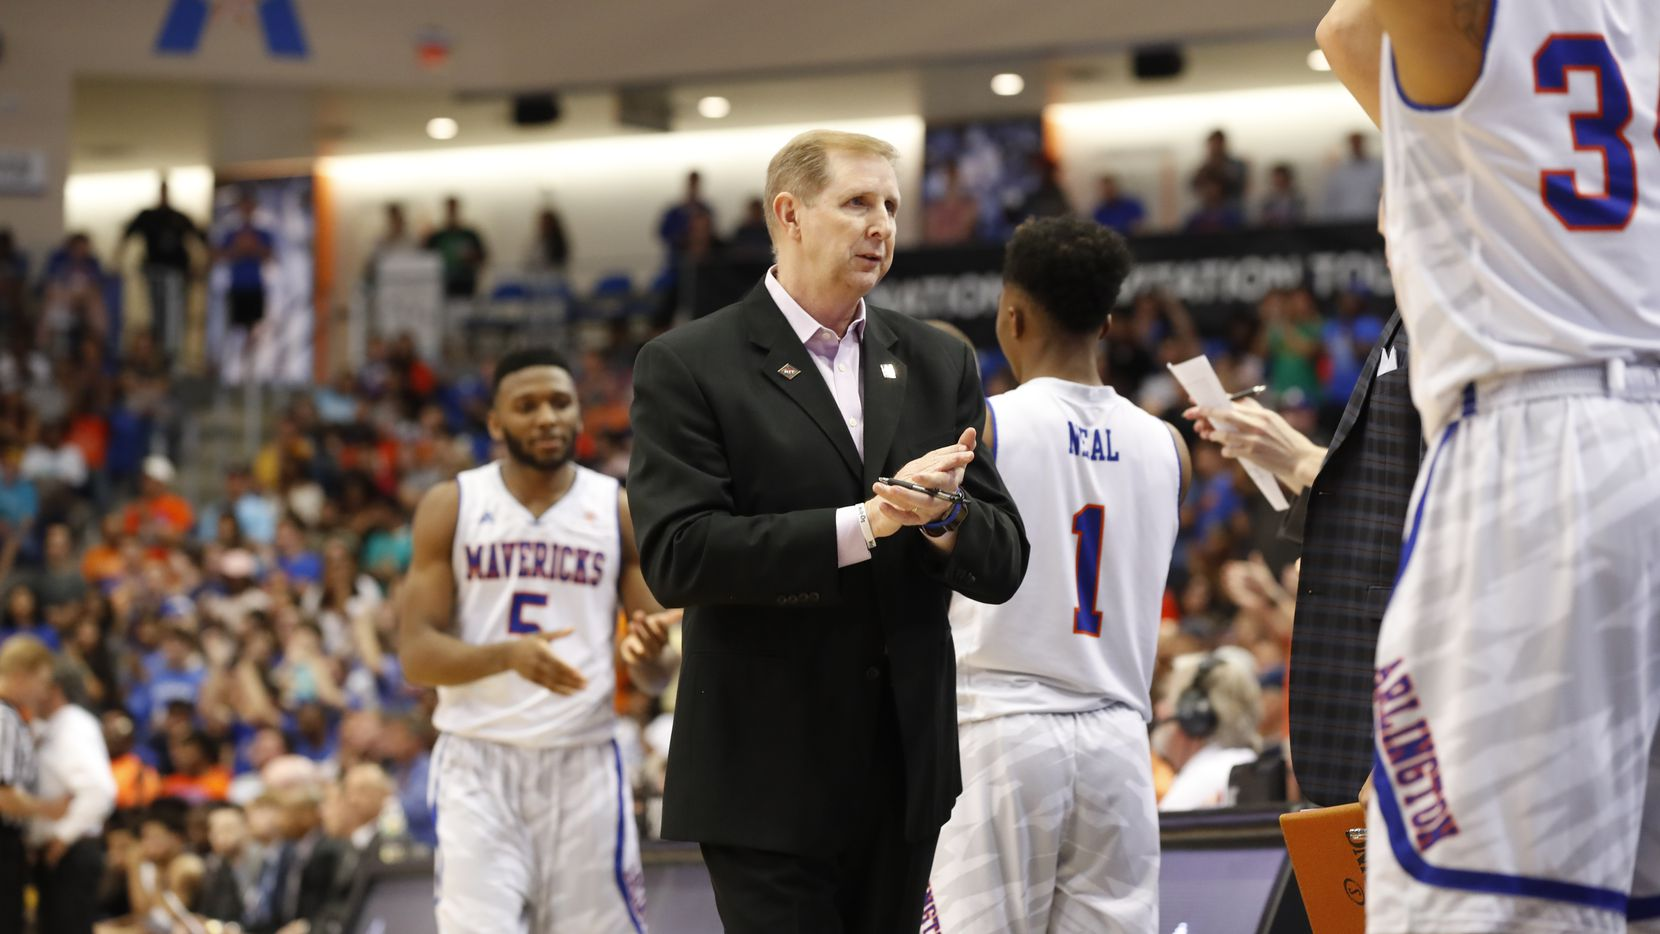 during UTA vs Akron in the second round of the National Invitation Tournament at College Park Center on Monday, March 20, 2017. (Photo by Gregg Ellman)